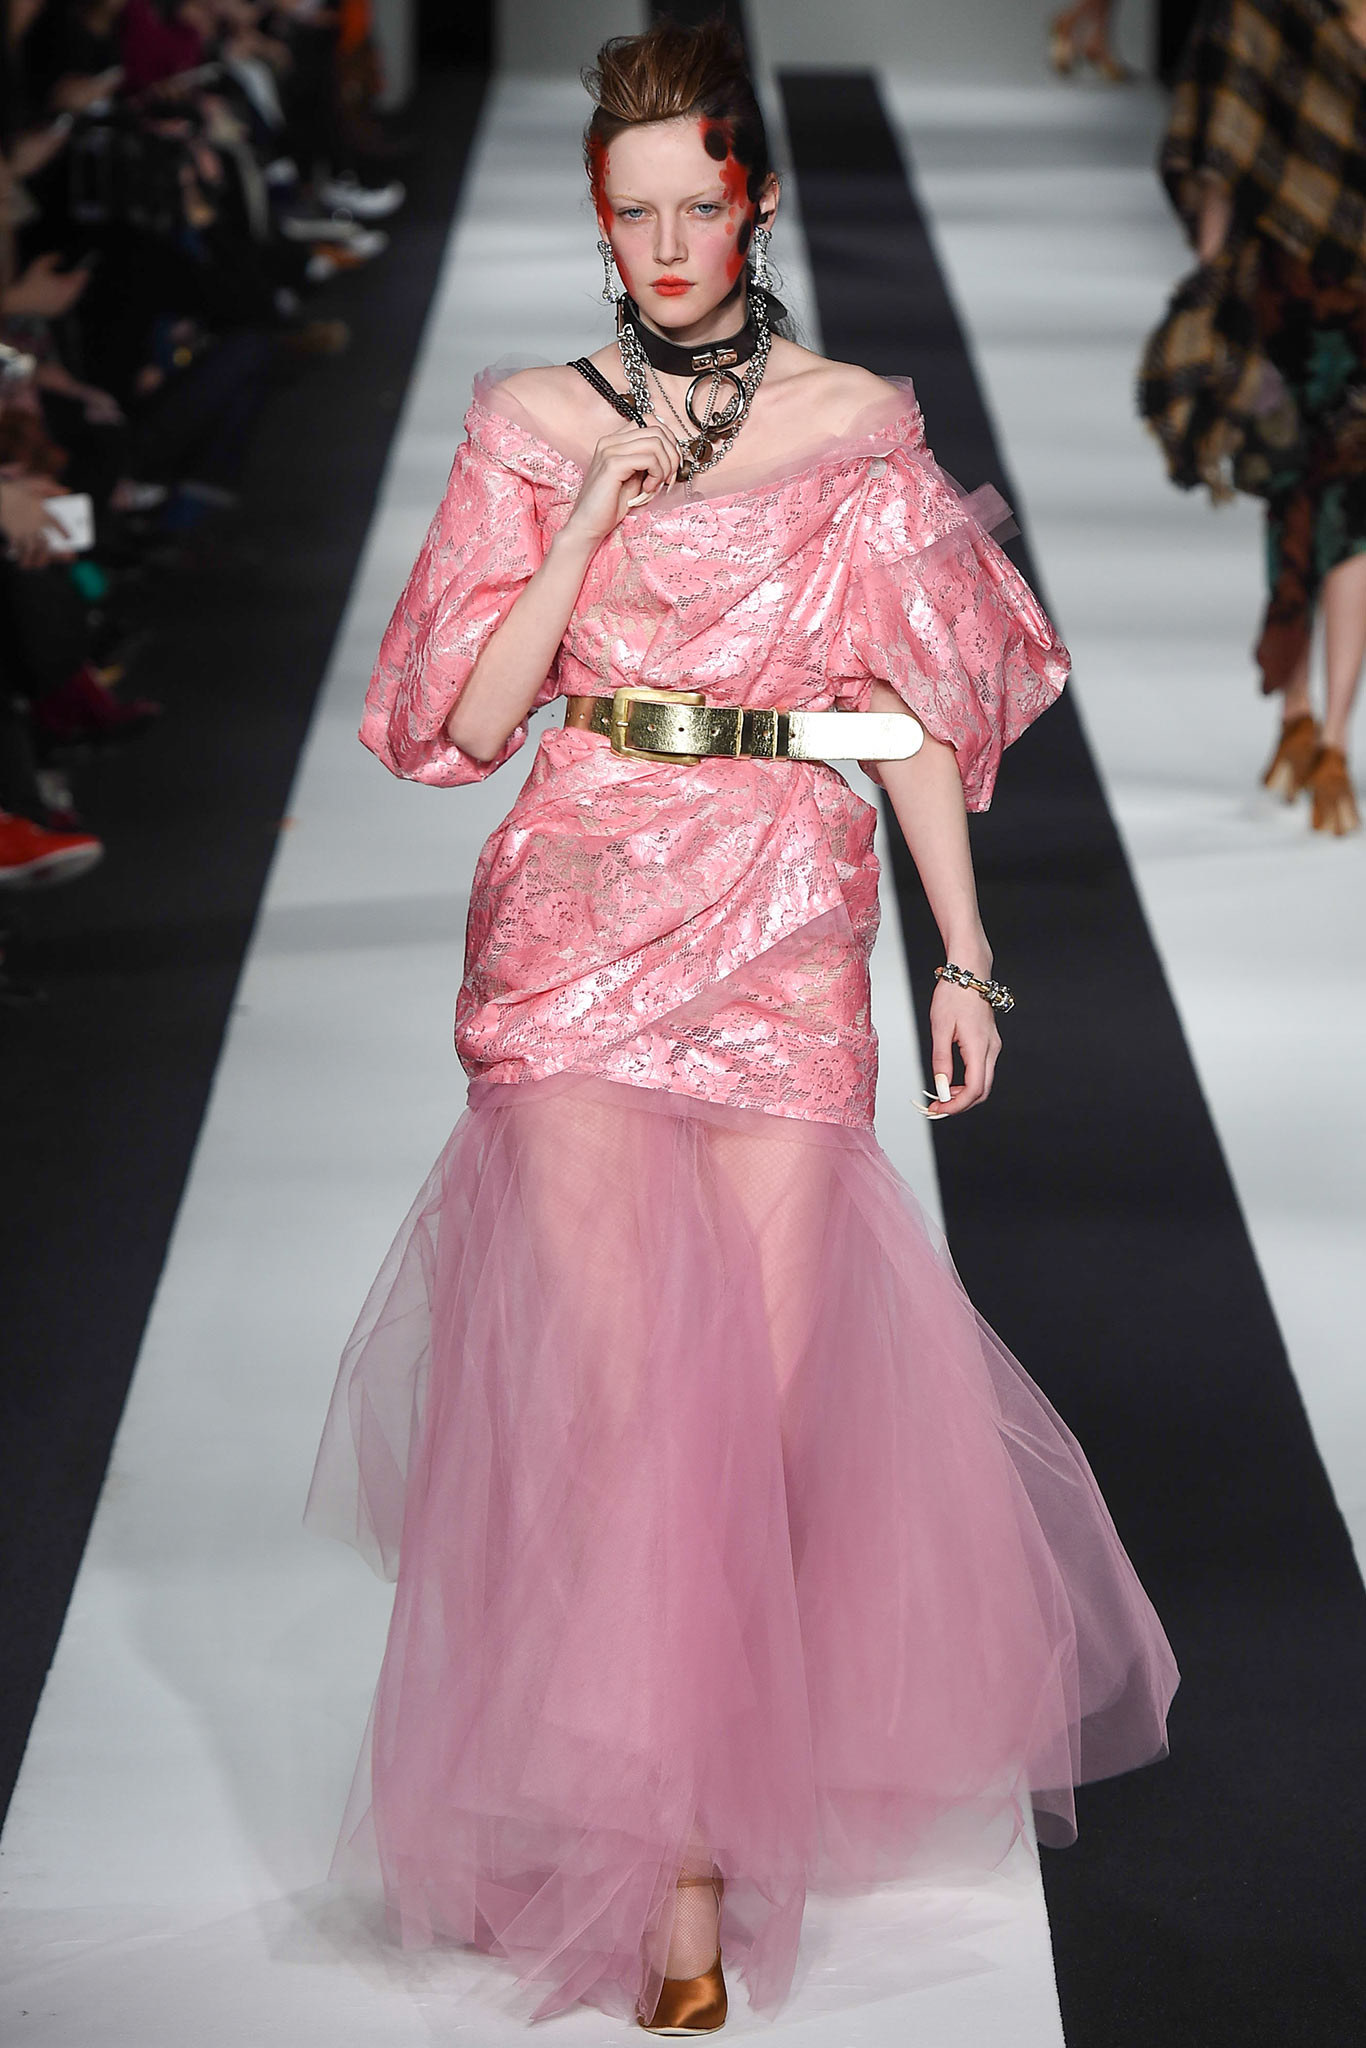 rihanna-in-vivienne-westwood-red-labe-riri-by-rihanna-fragrance-unveiling